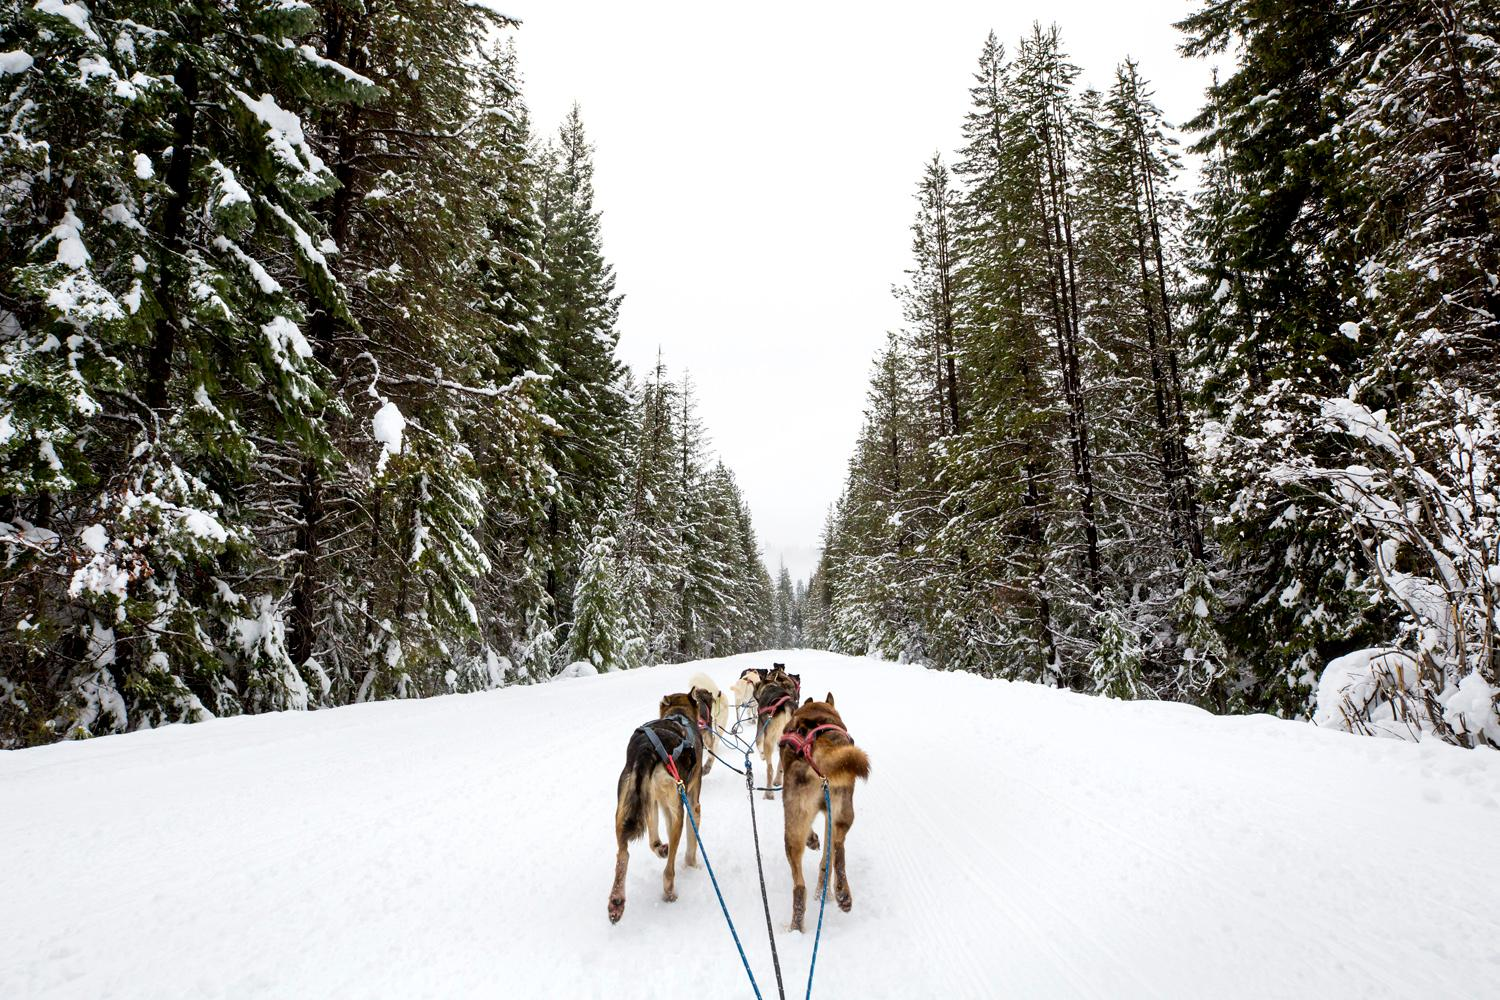 Once you travel via dogsled, it's going to be hard to get back in your car, or on the bus. Case in point: we joined Captain Larry Roxby and his team of dogs (known as The Flying Furs) on a six-mile run in the Wenatchee State Forest. The scenery was beautiful, the dogs majestic - and Captain Larry a HOOT! Roxby's team of 26 dogs is made up of Iditarod vets, current racing champs, Siberian Huskies, Alaskans and rescues - that he trains all year long. Rides with Captain Larry and his dogs can be booked online at  northwestdogsledadventuresllc.com. (Image: Sy Bean / Seattle Refined)